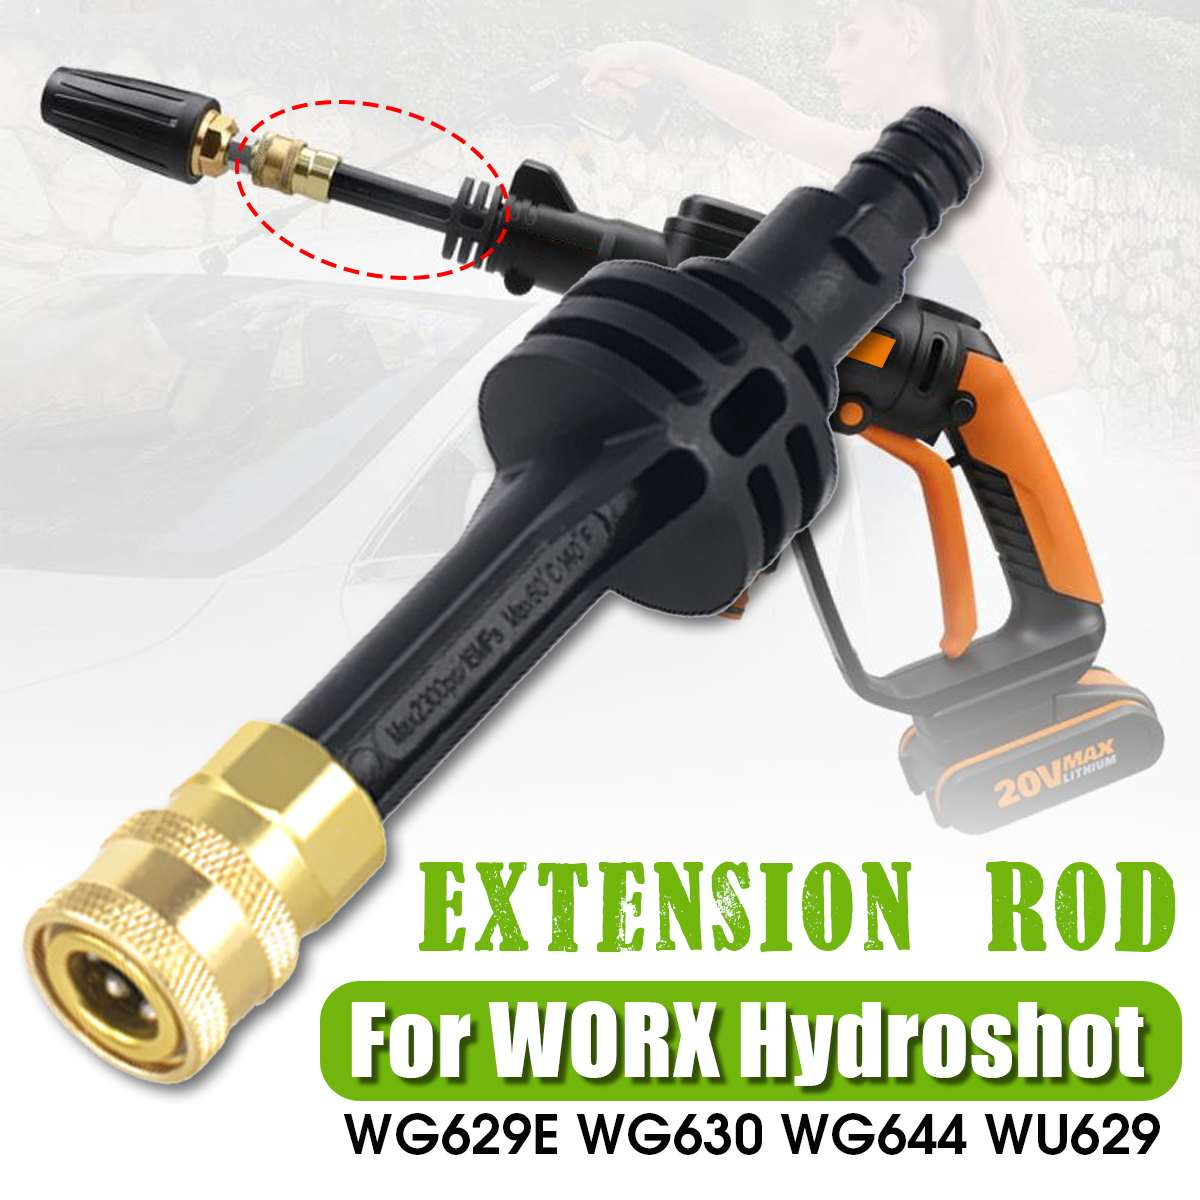 Extension Rod Adapter For WORX Hydroshot WG629E WG630 WG644 WU629 Cleaning Tools